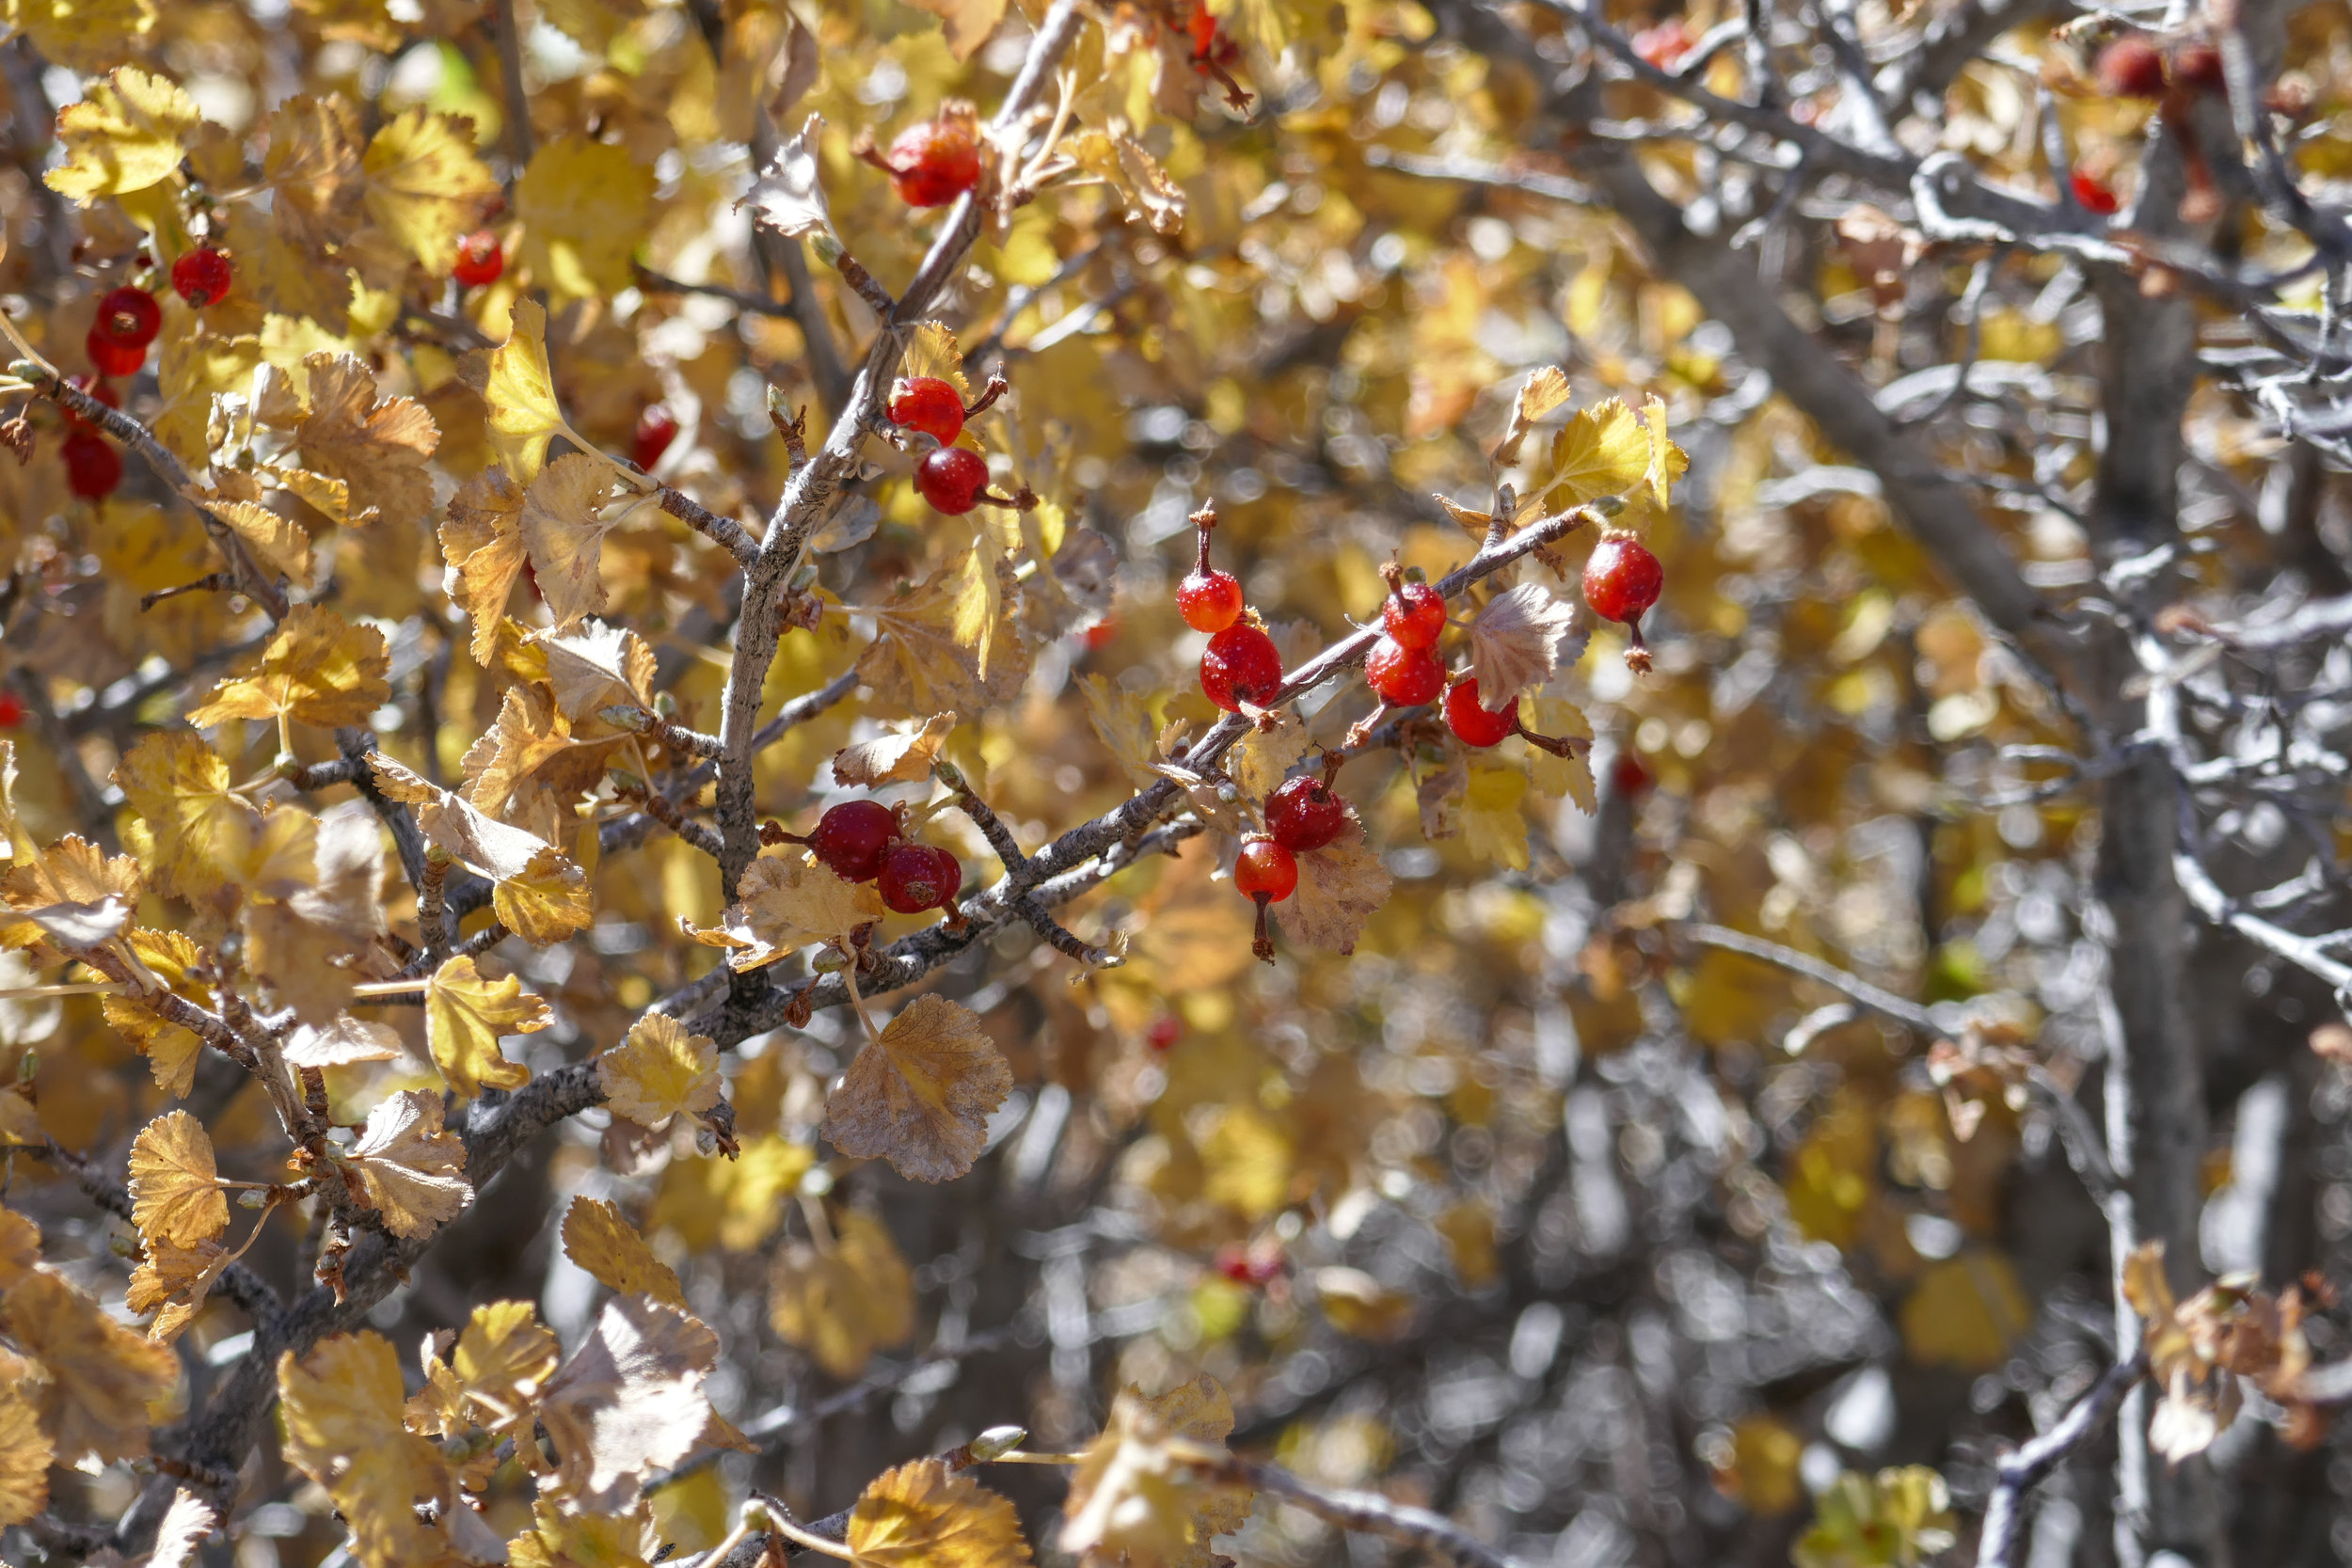 I think these berries are what the all the birds in this section were eating.